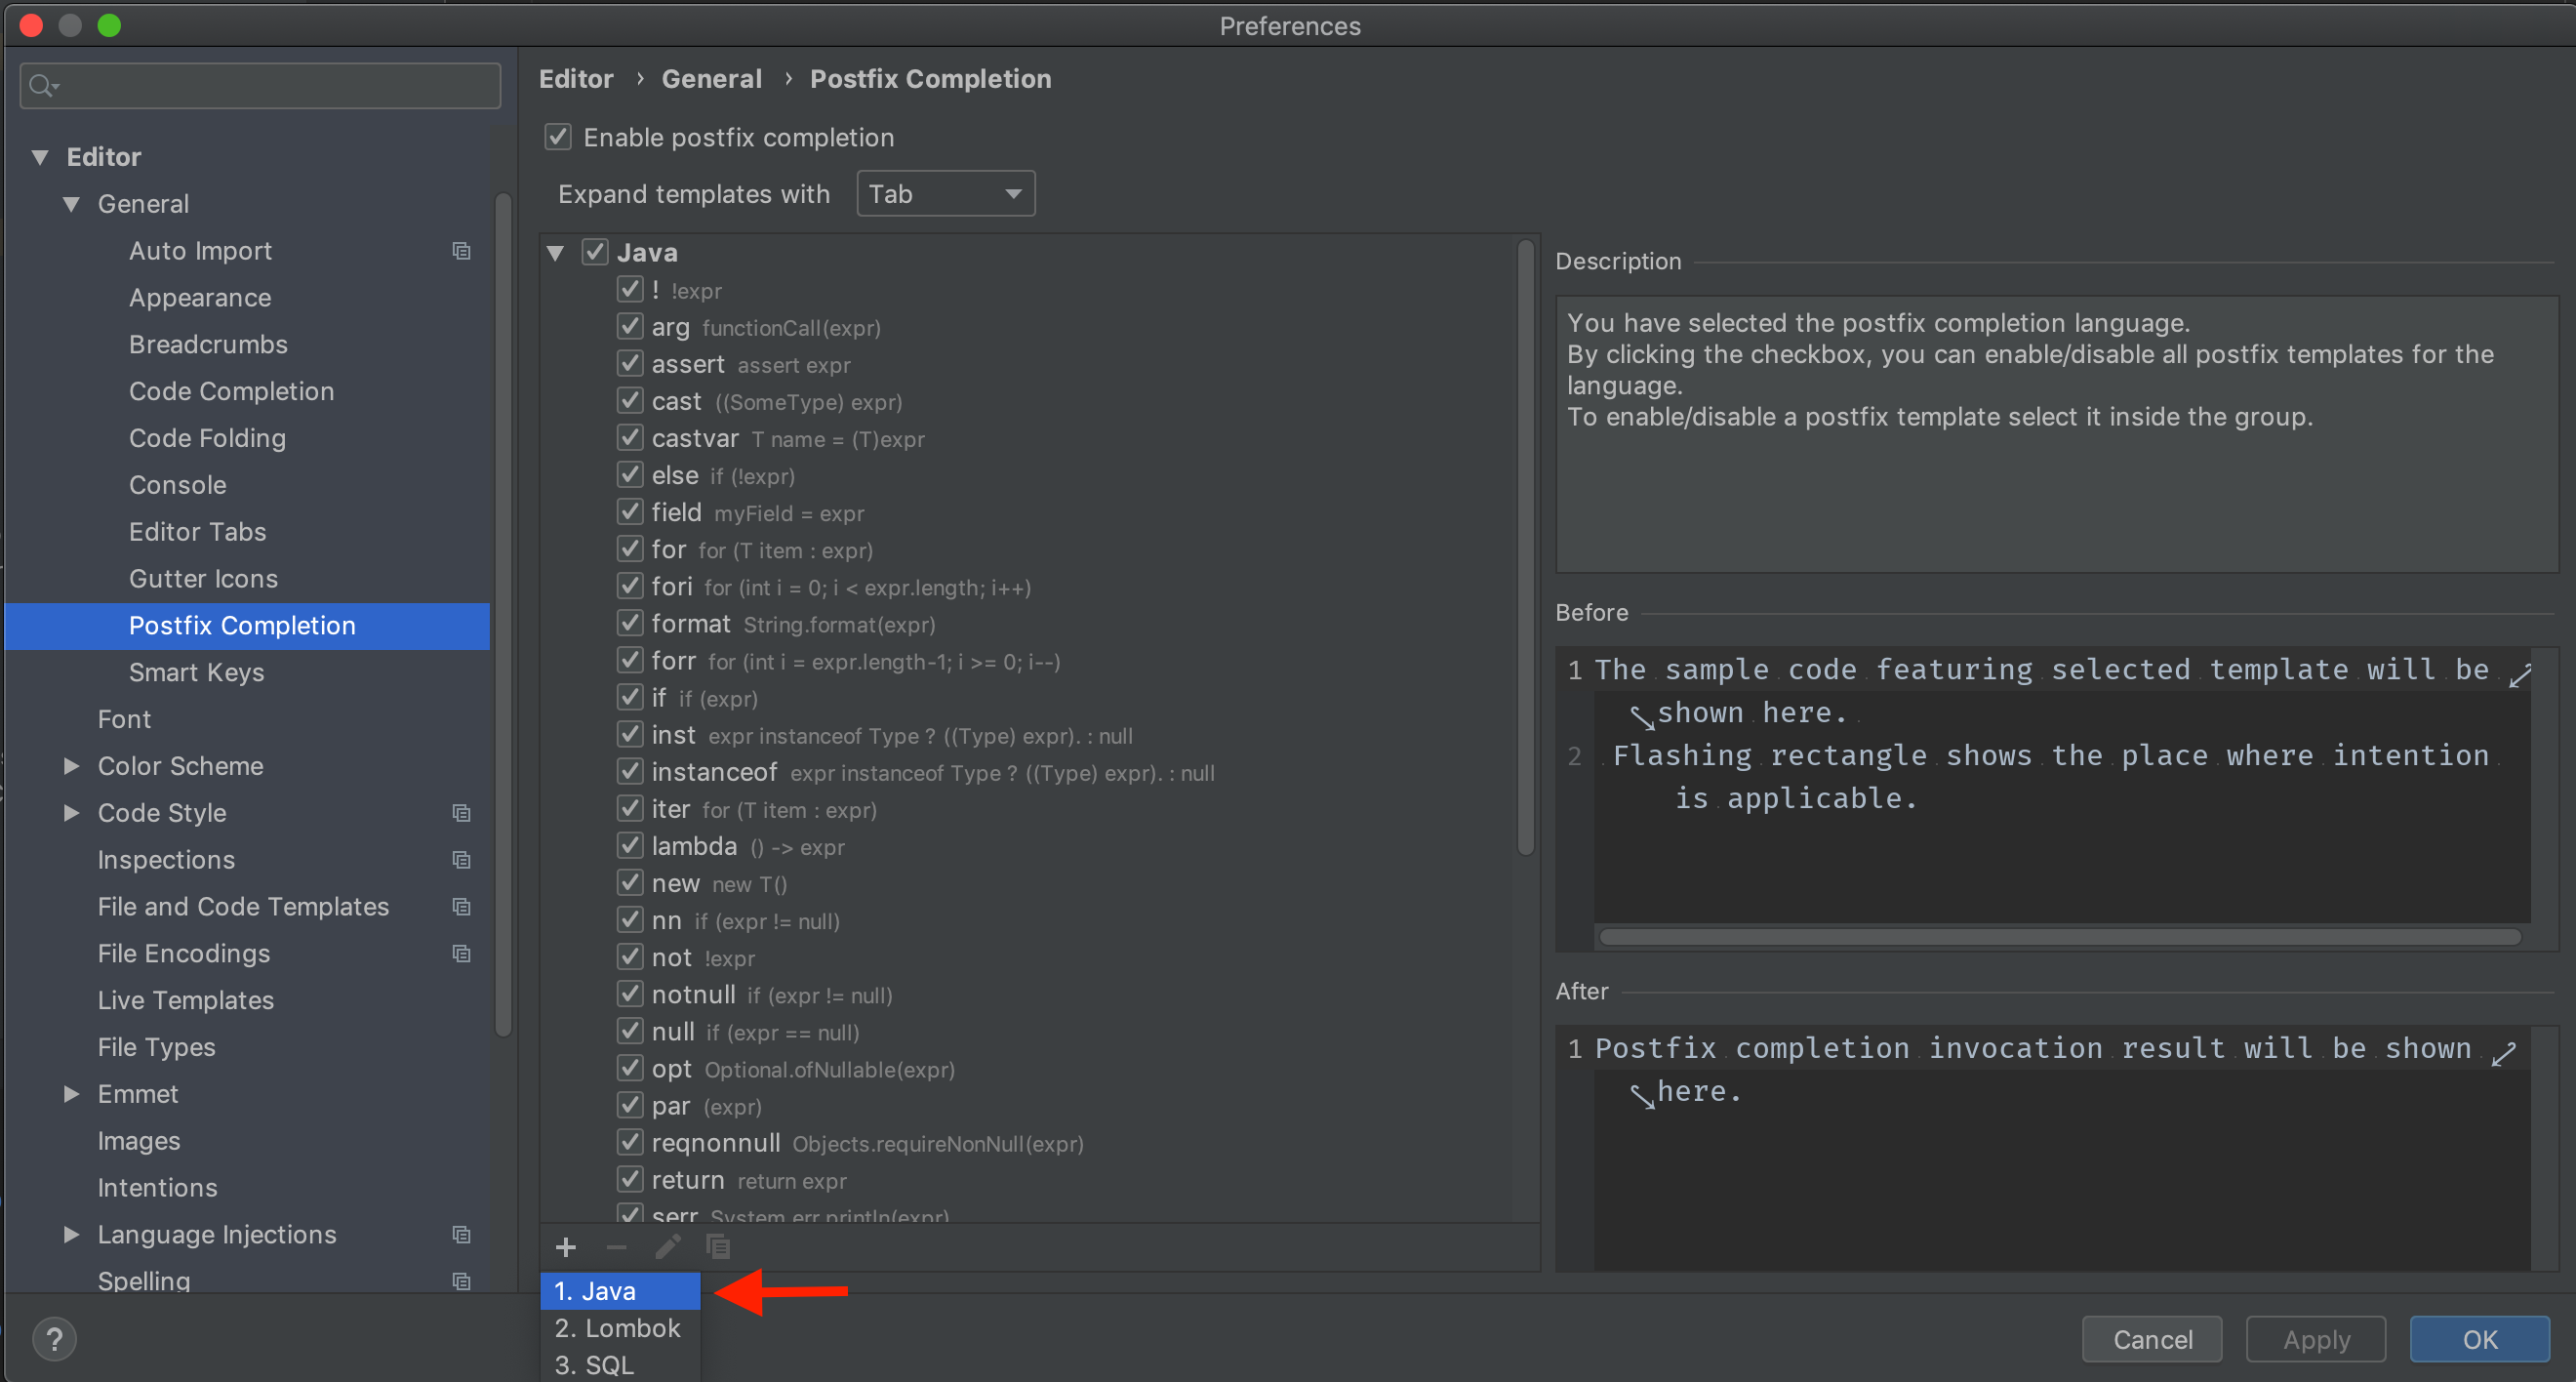 Can't add new 'Java Postfix Completion shortcut' and upon